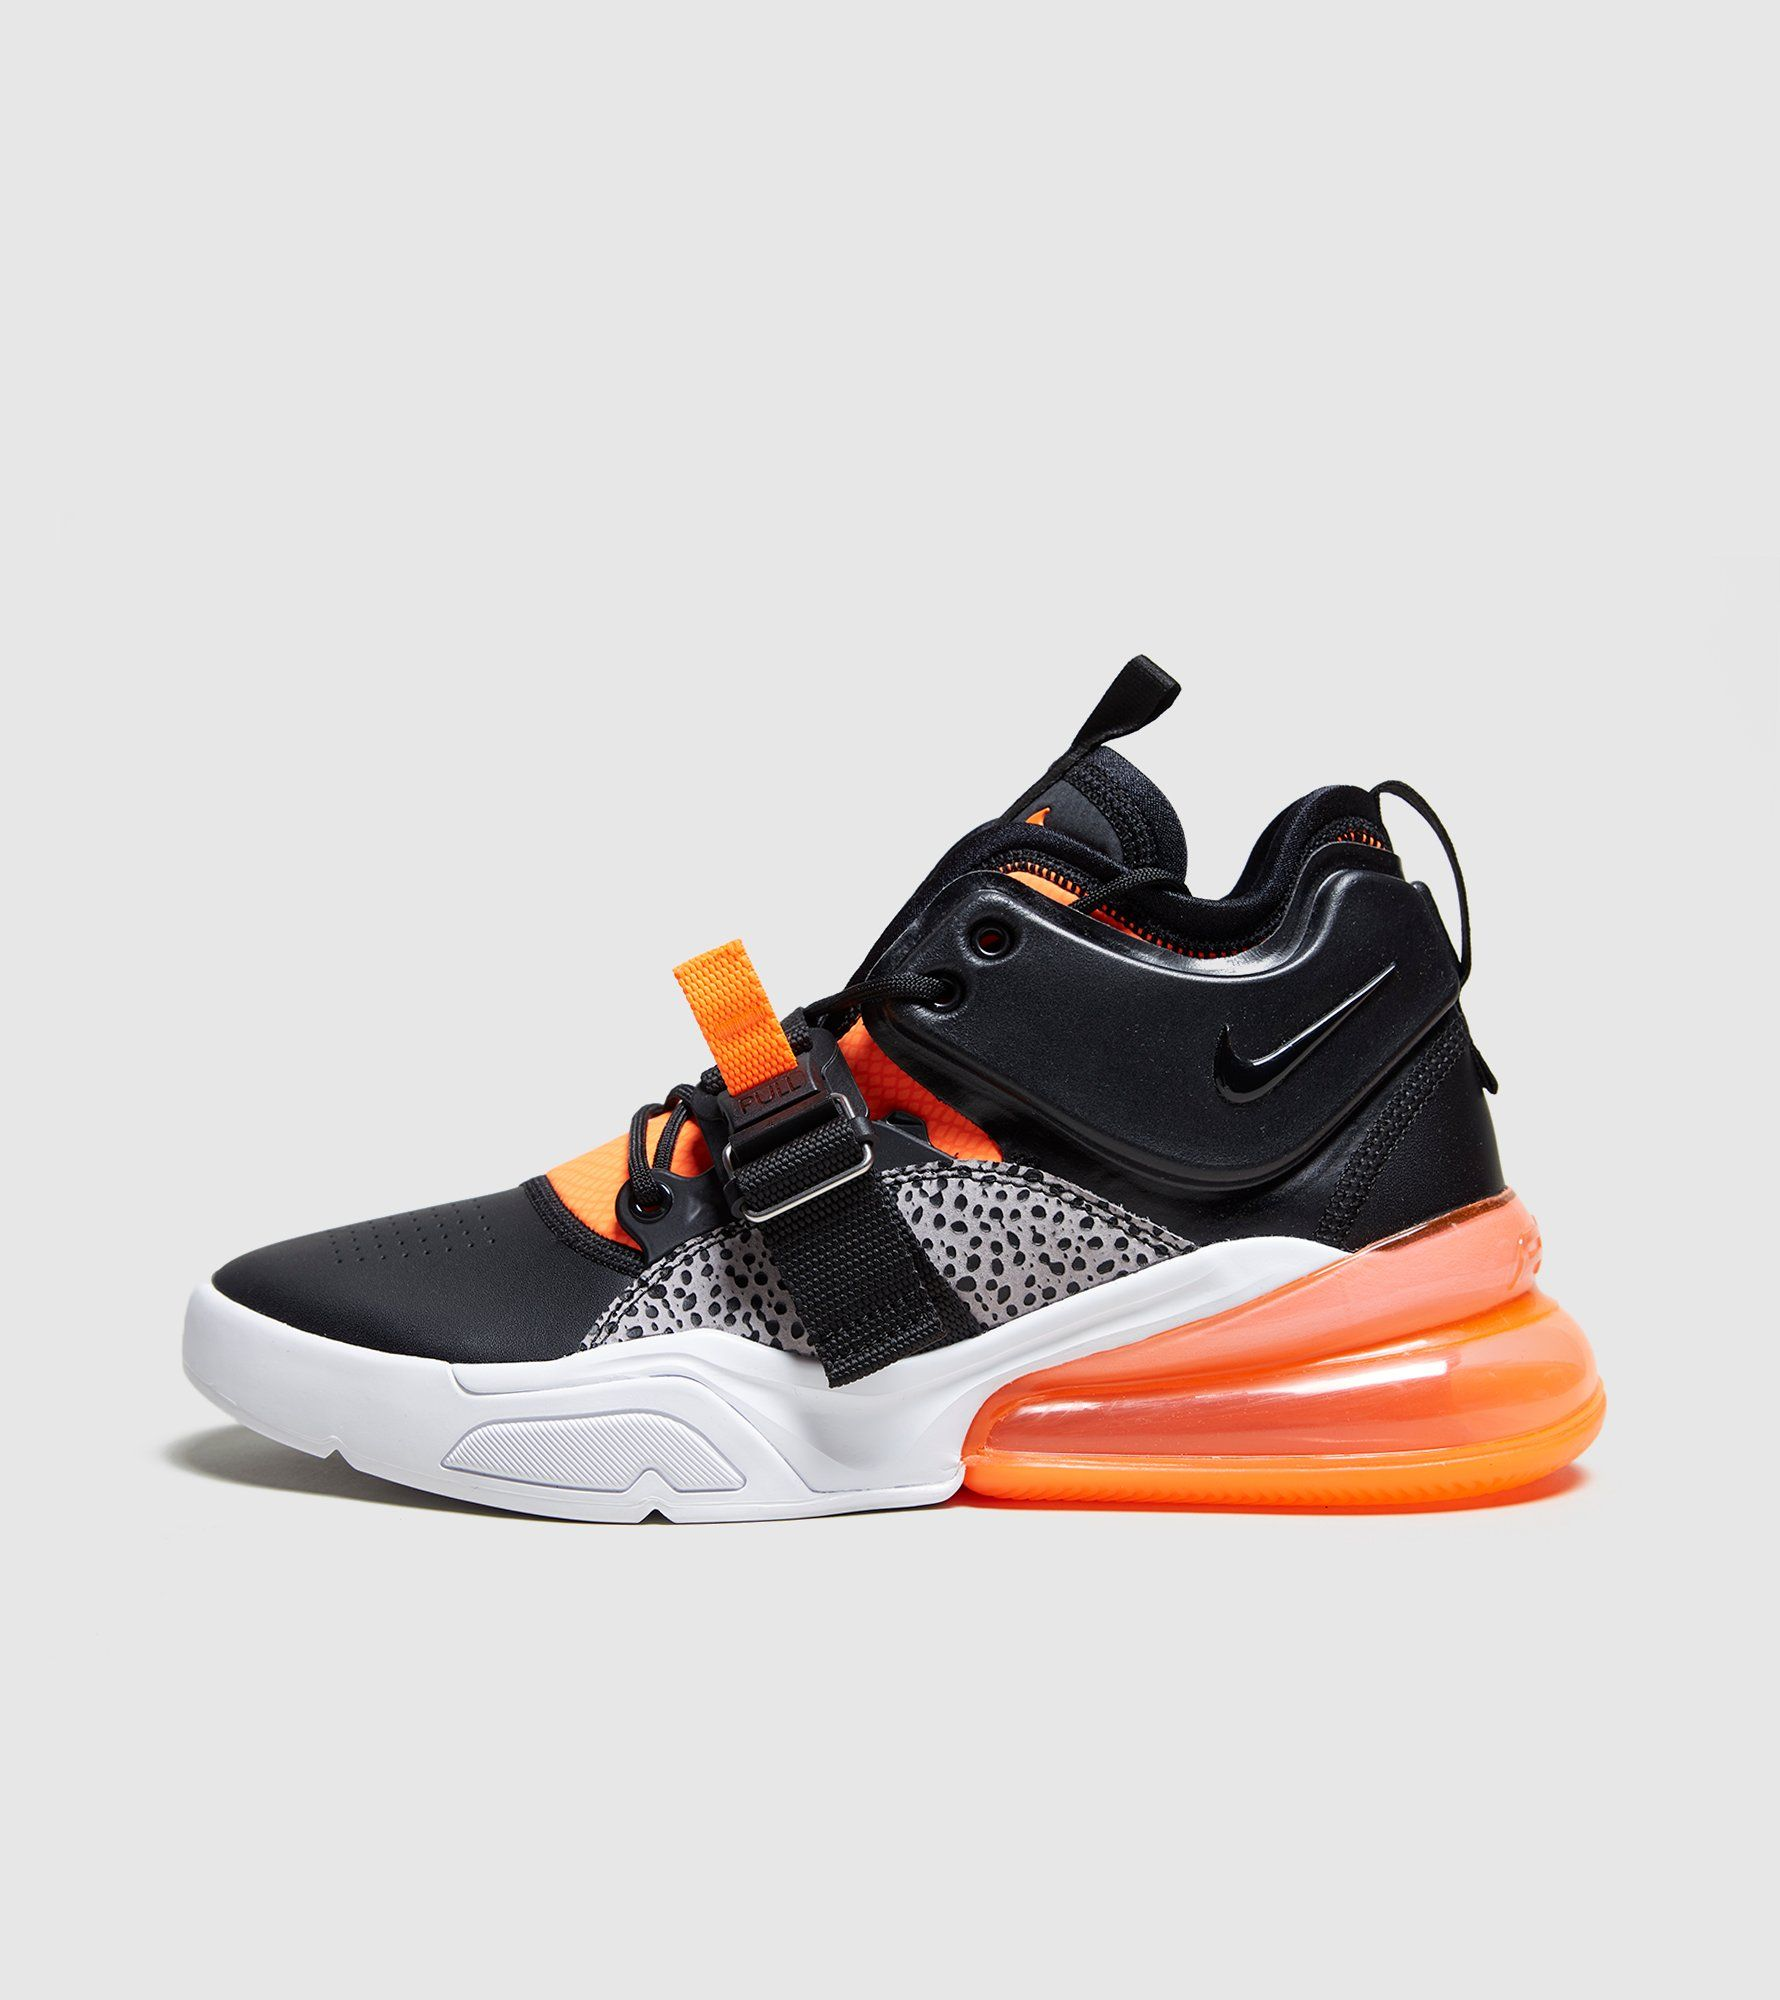 nike air force 270 size. Black Bedroom Furniture Sets. Home Design Ideas